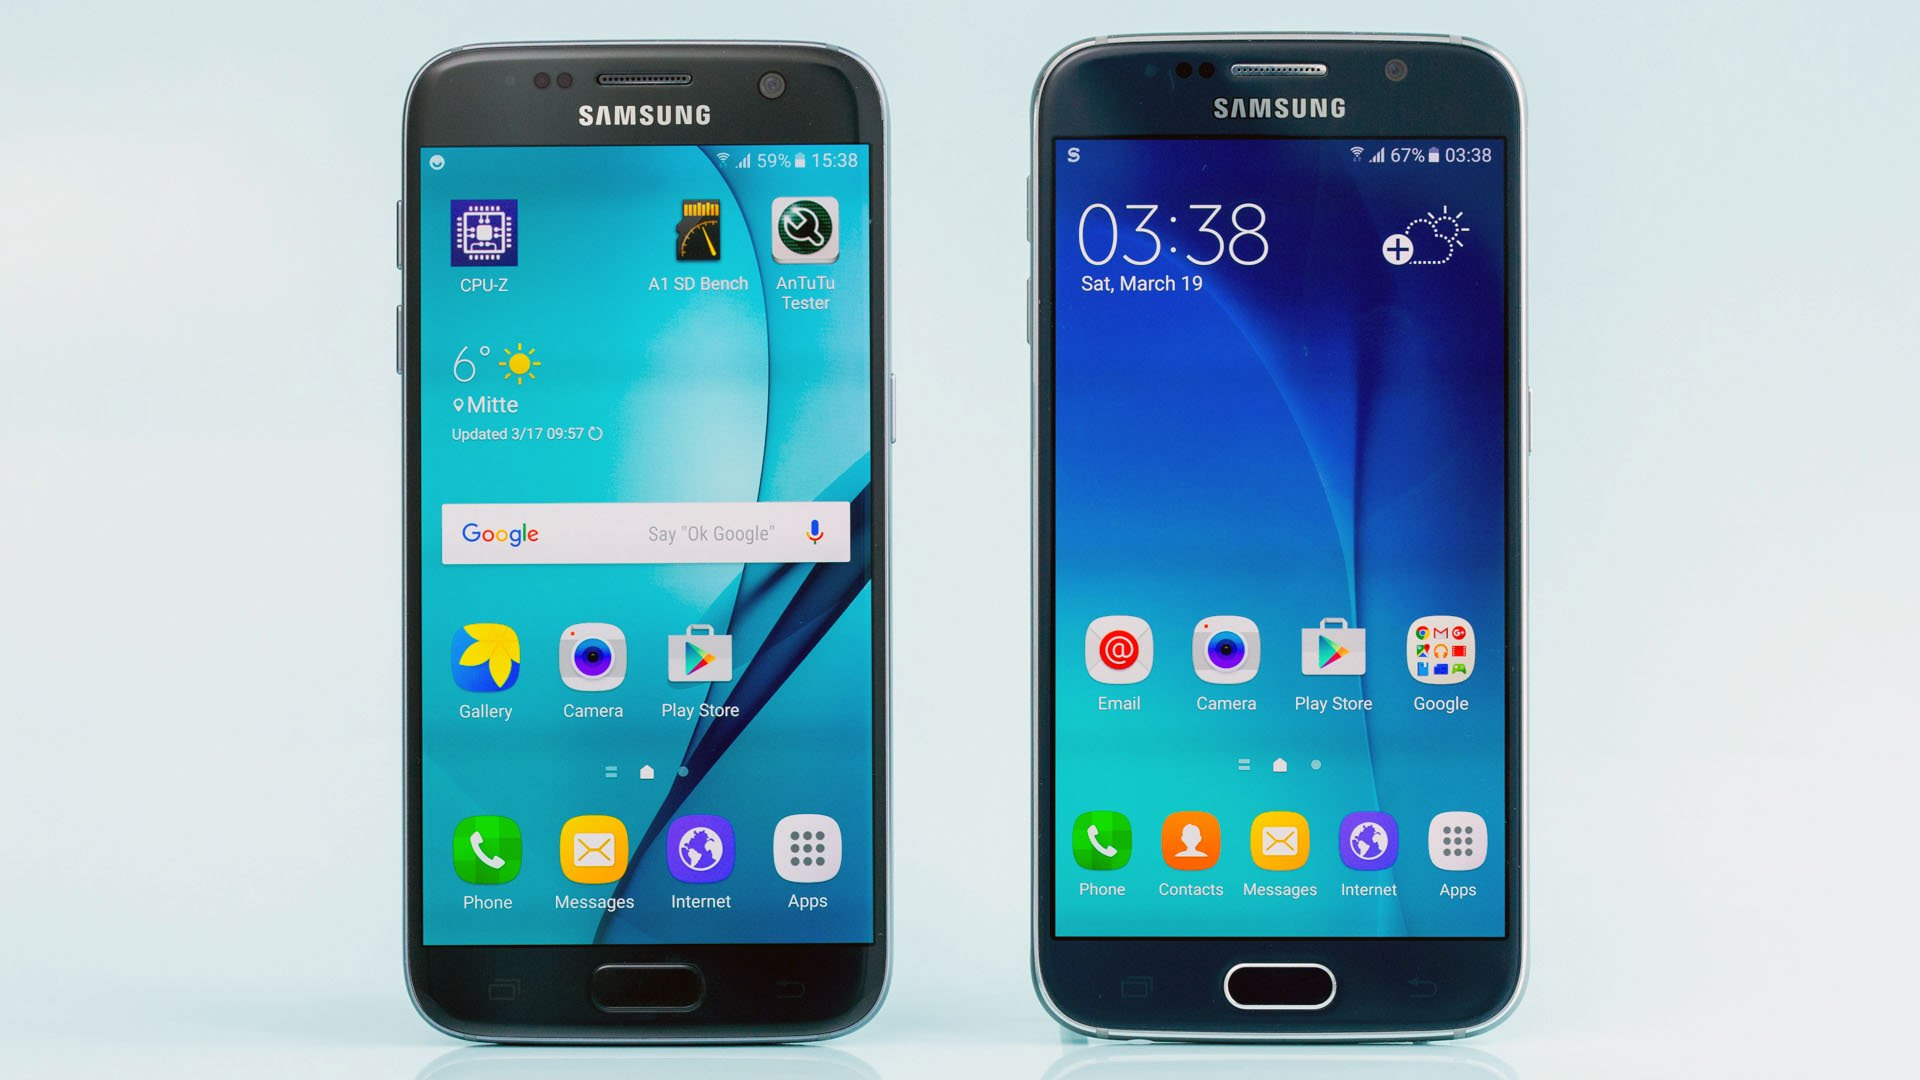 Samsung Galaxy S6 Vs S7 An Old School Upgrade Worth Considering